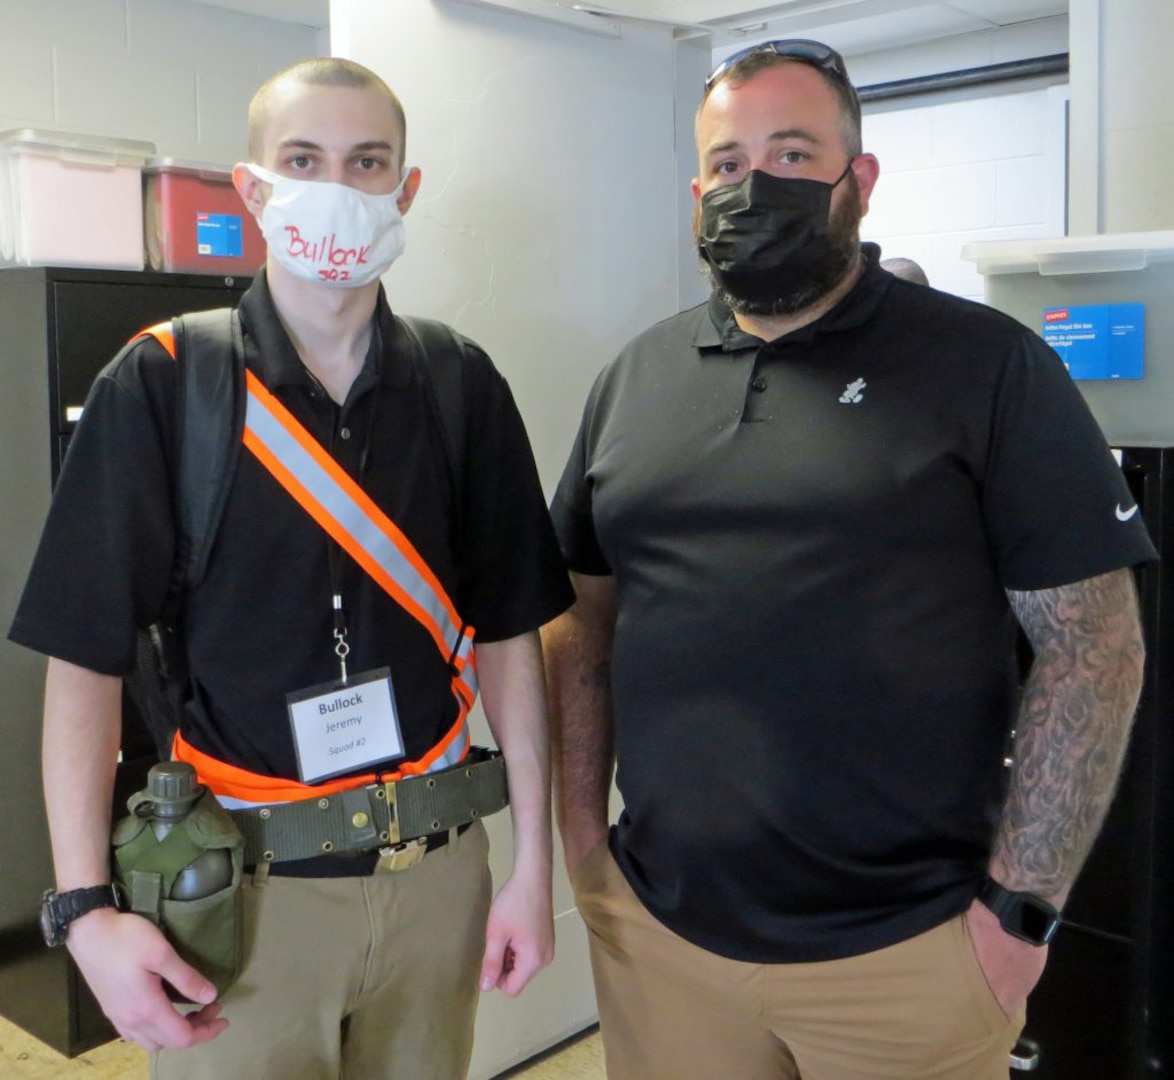 Jeremy Bullock, left, and his father, Brandon, on July 11, 2021, at the Maryland National Guard's Freestate ChalleNGe Academy program at the Edgewood Arsenal of Aberdeen Proving Ground. Jeremy is attending the 18-month program for at-risk youth 20 years after his father graduated from the same program.